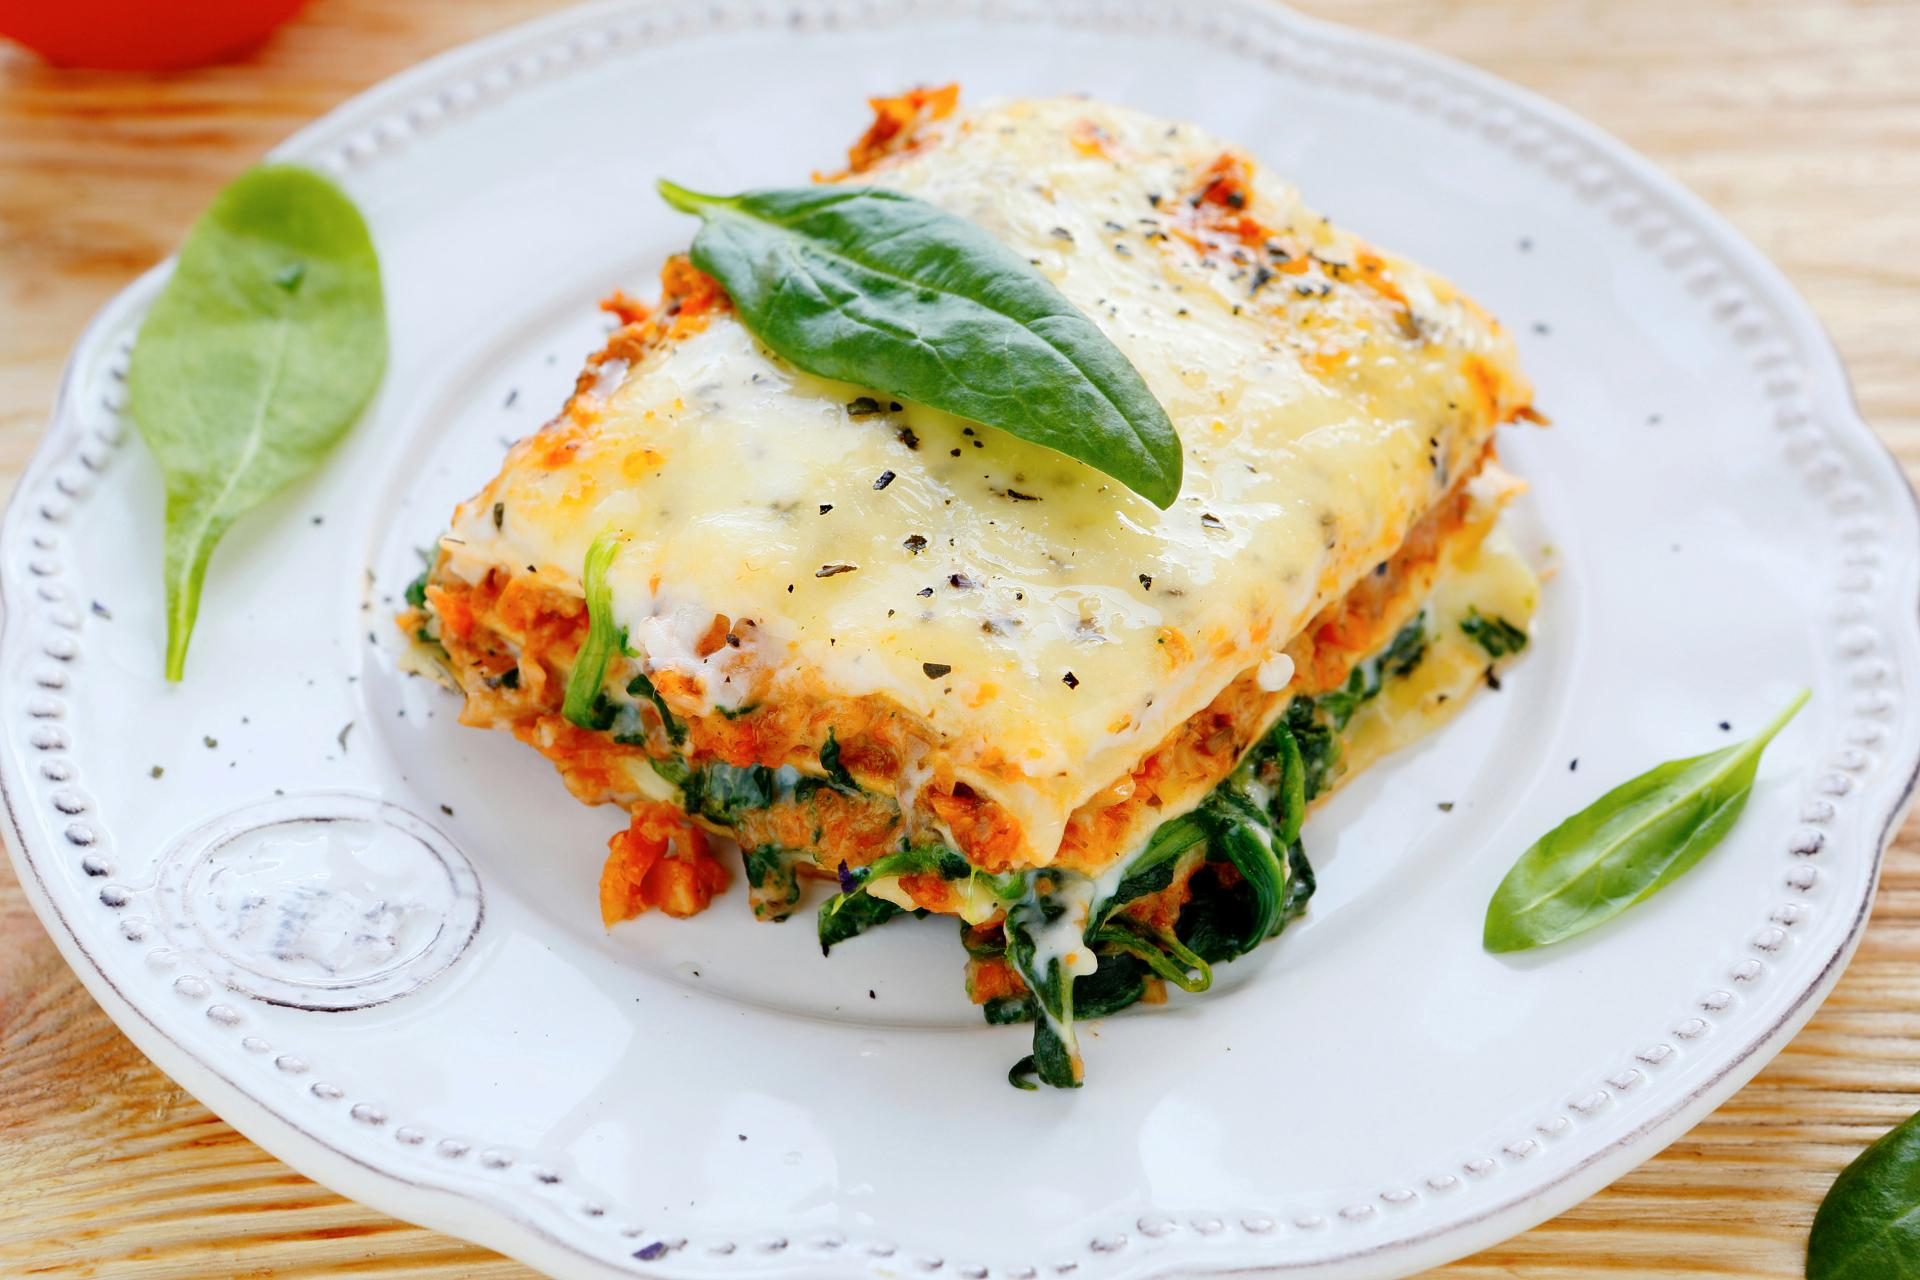 Lasagne at 640 x 960 iPhone 4 size wallpapers HD quality